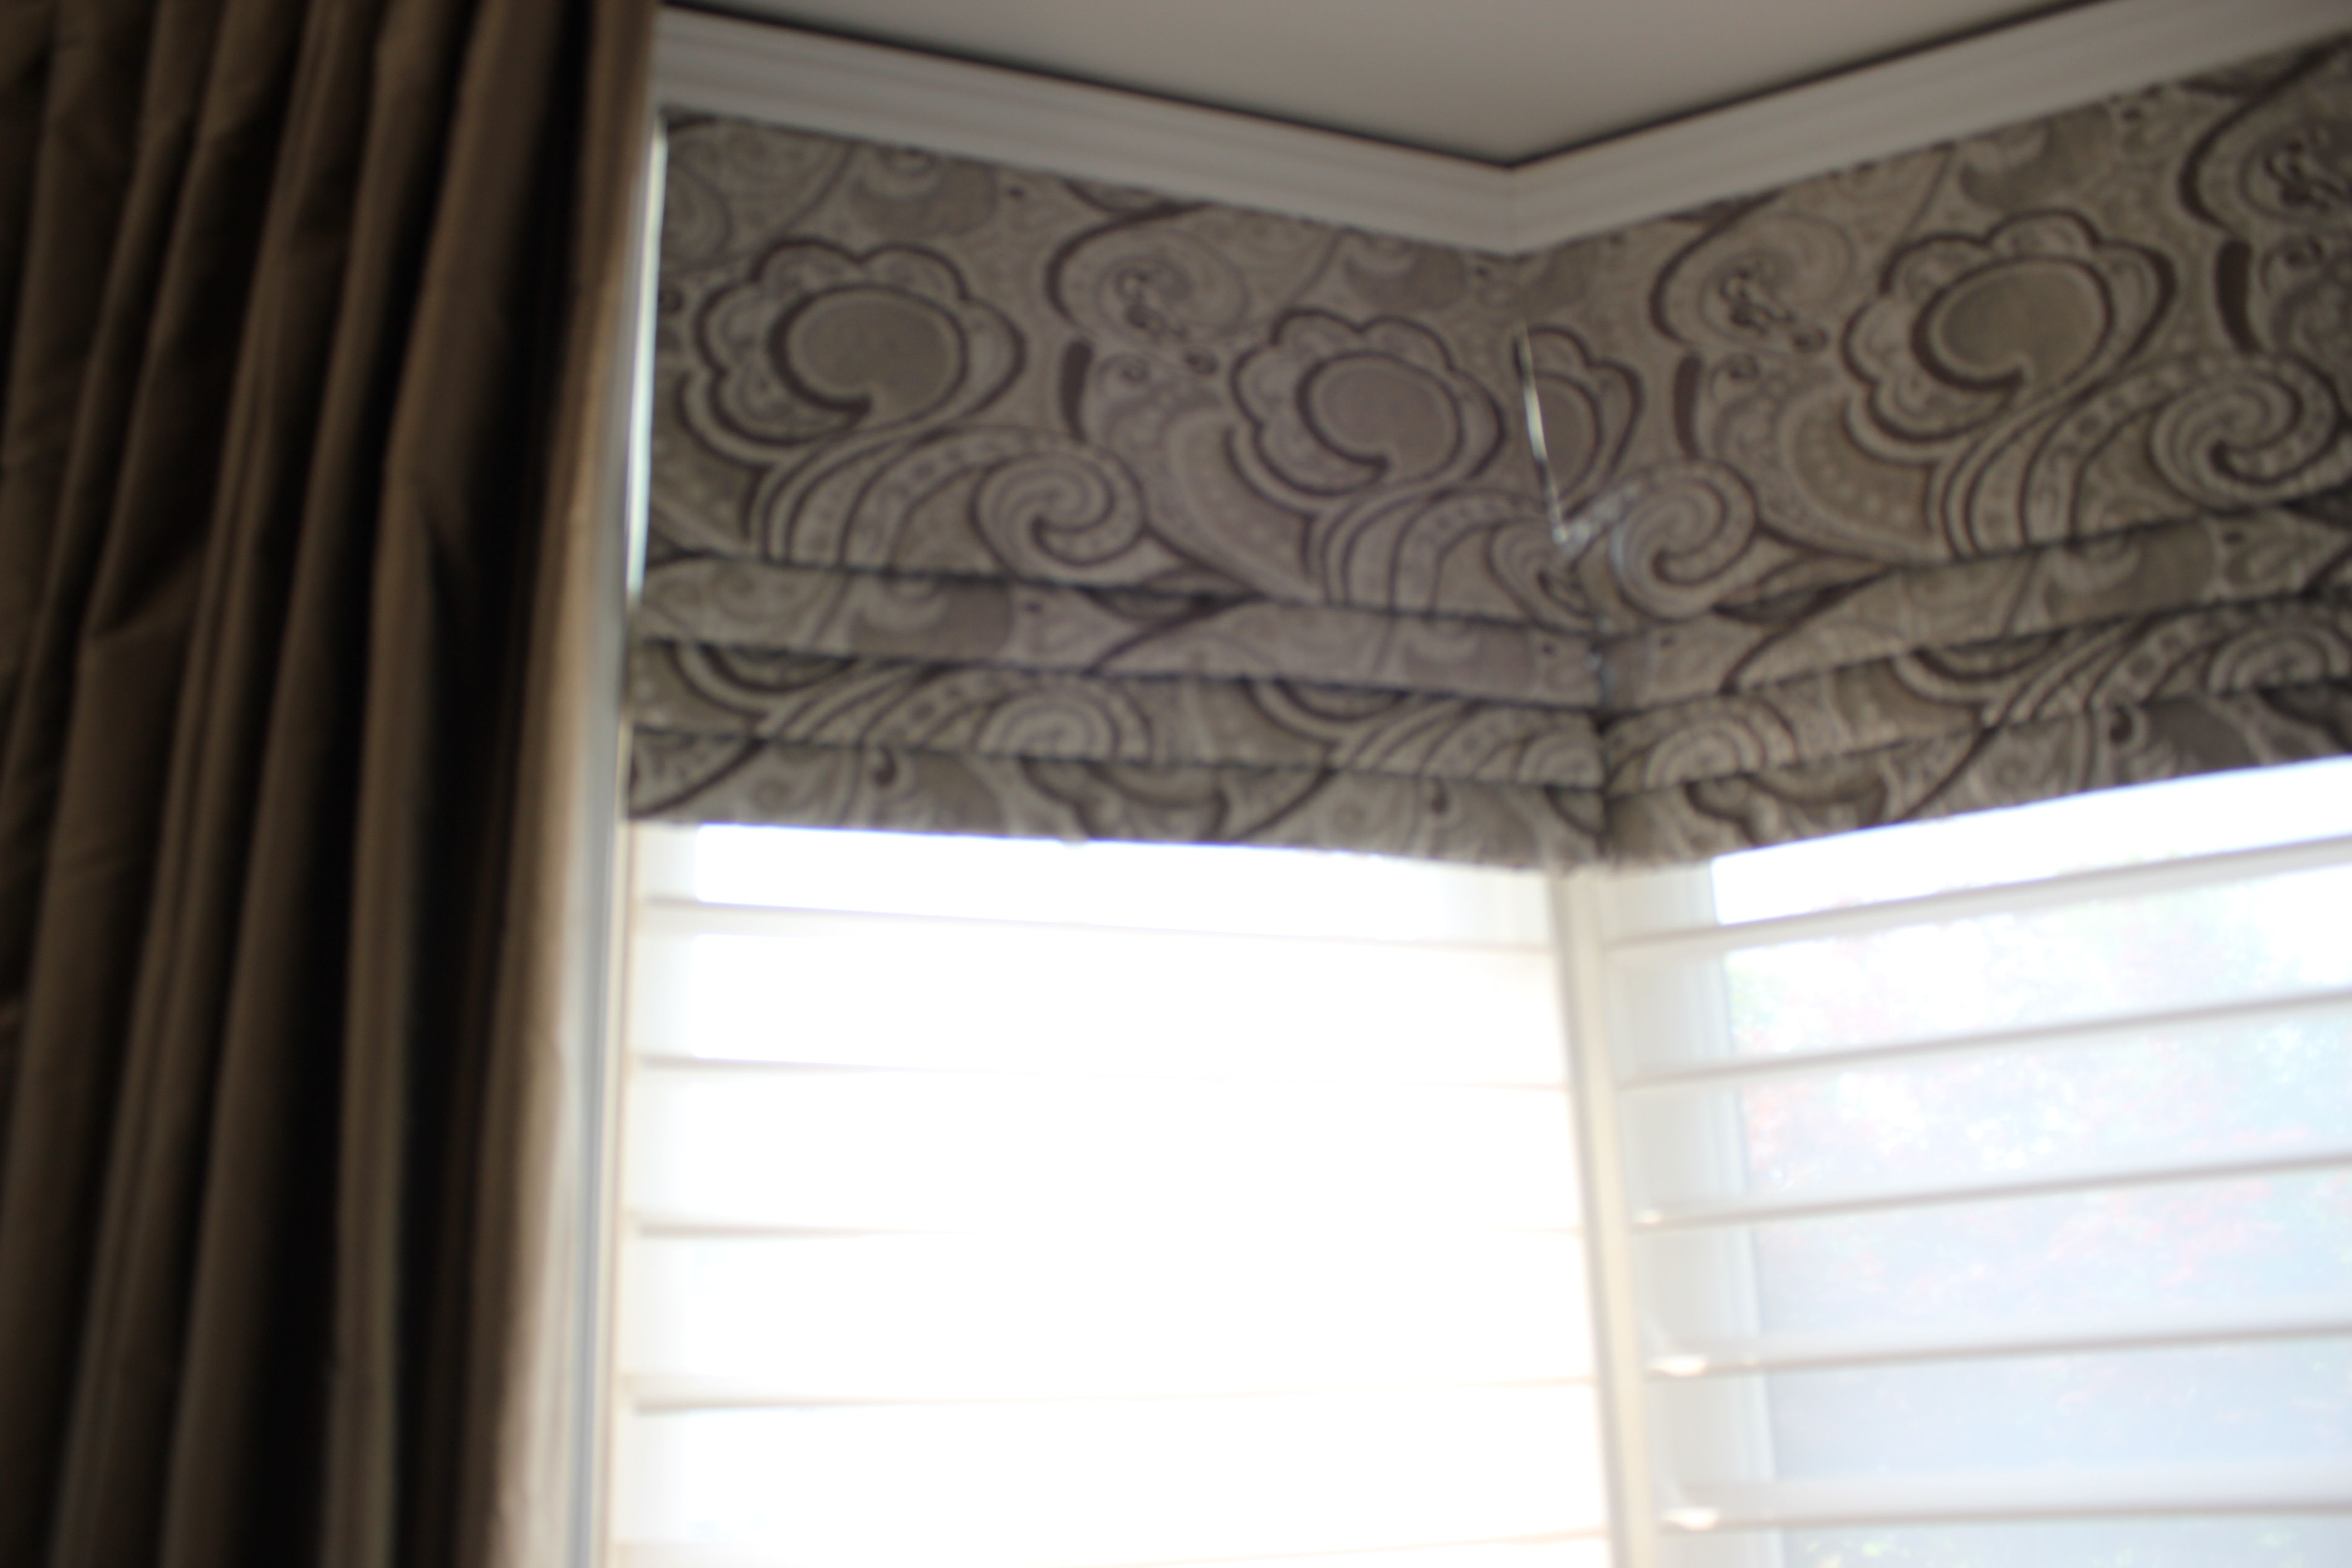 Faux Roman Valance In A Bay Window Placed Over Hunter